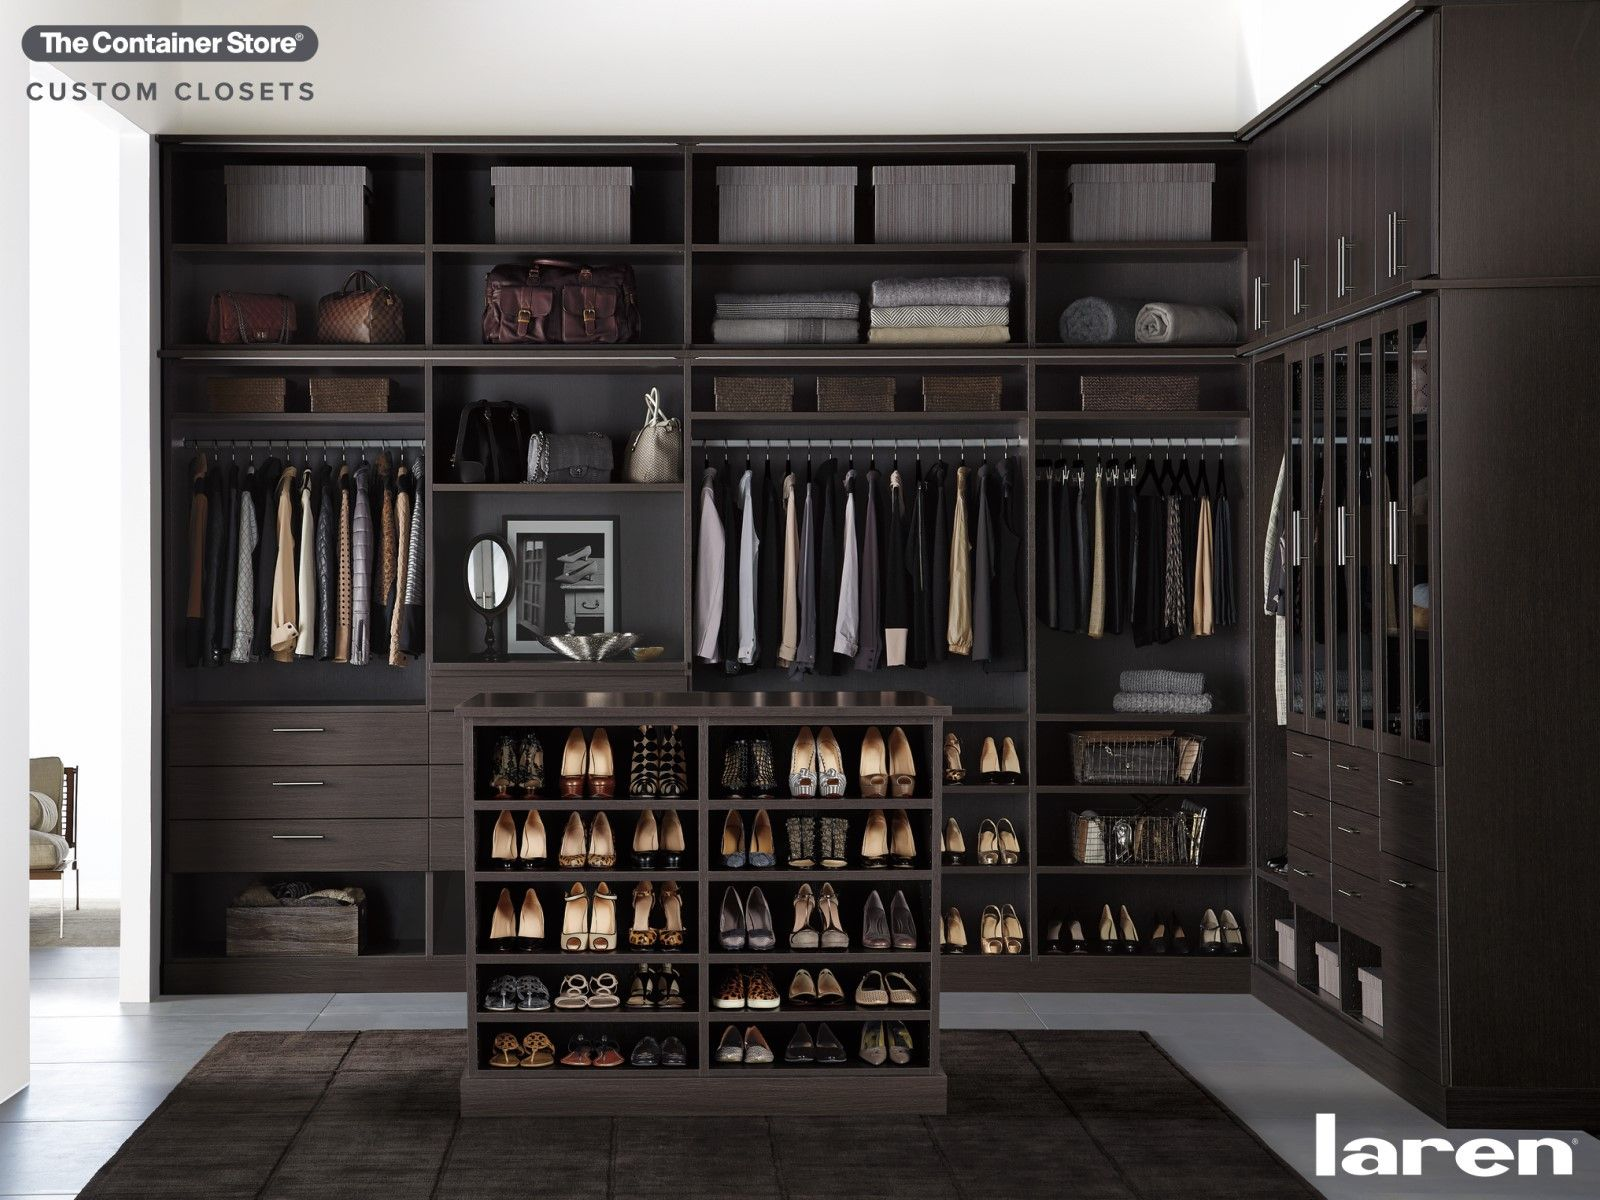 Let Us Install The Luxury Custom Closet Of Your Dreams Contact Us Today For A Free Custom Laren D Custom Closets Custom Closet Shelving Closet Shelving System